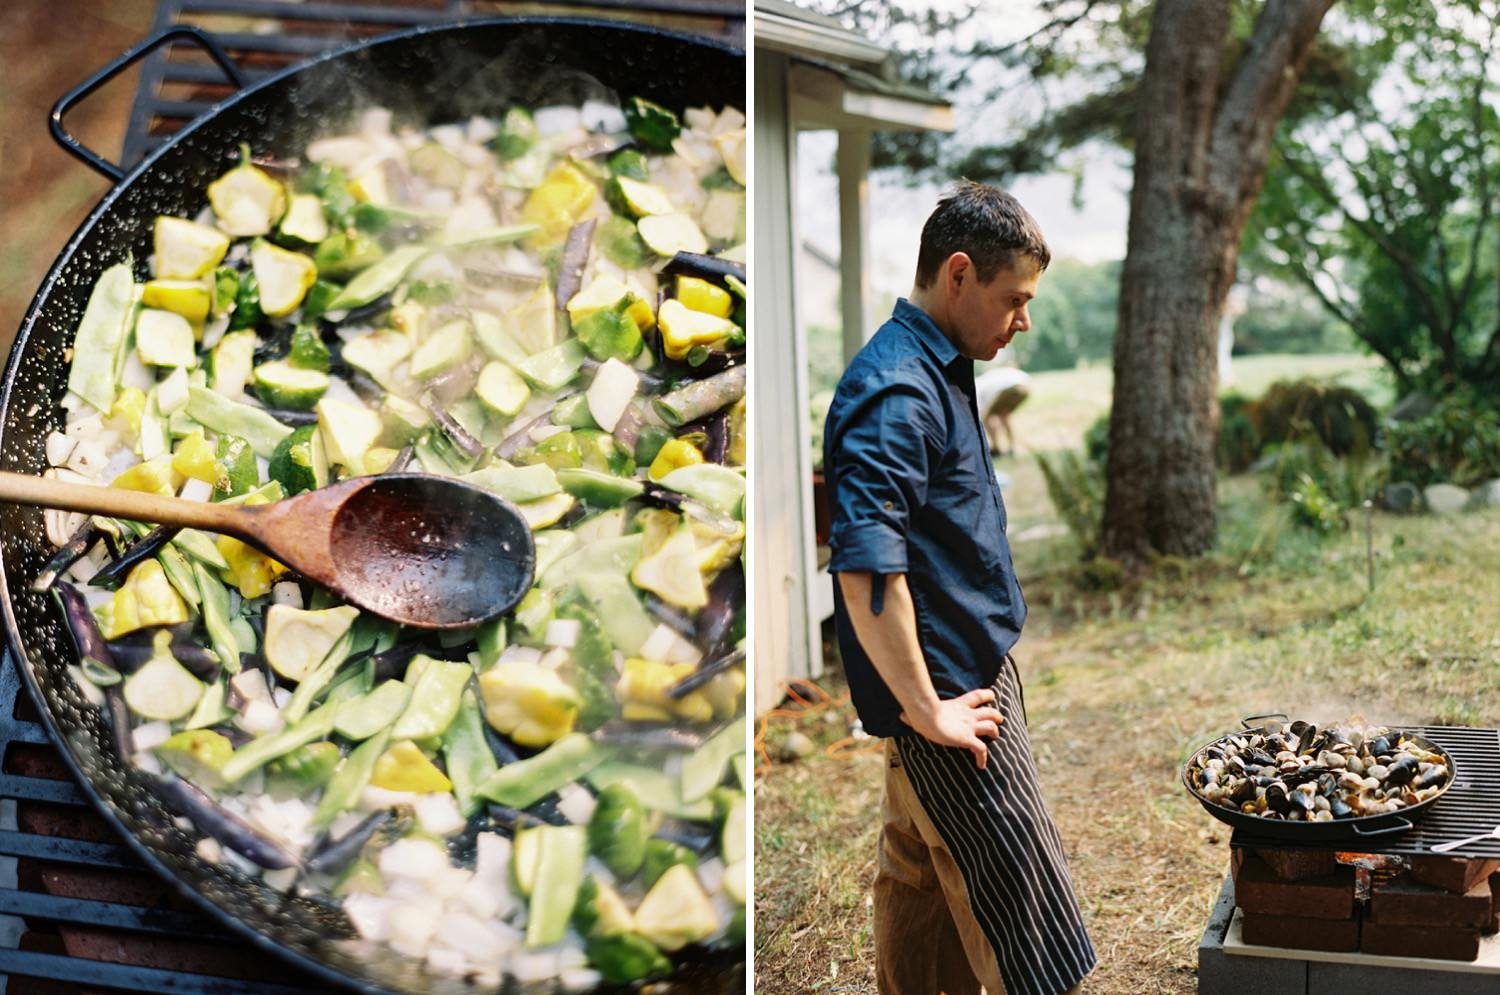 A wedding meal cooked over the fire on Bainbridge Island